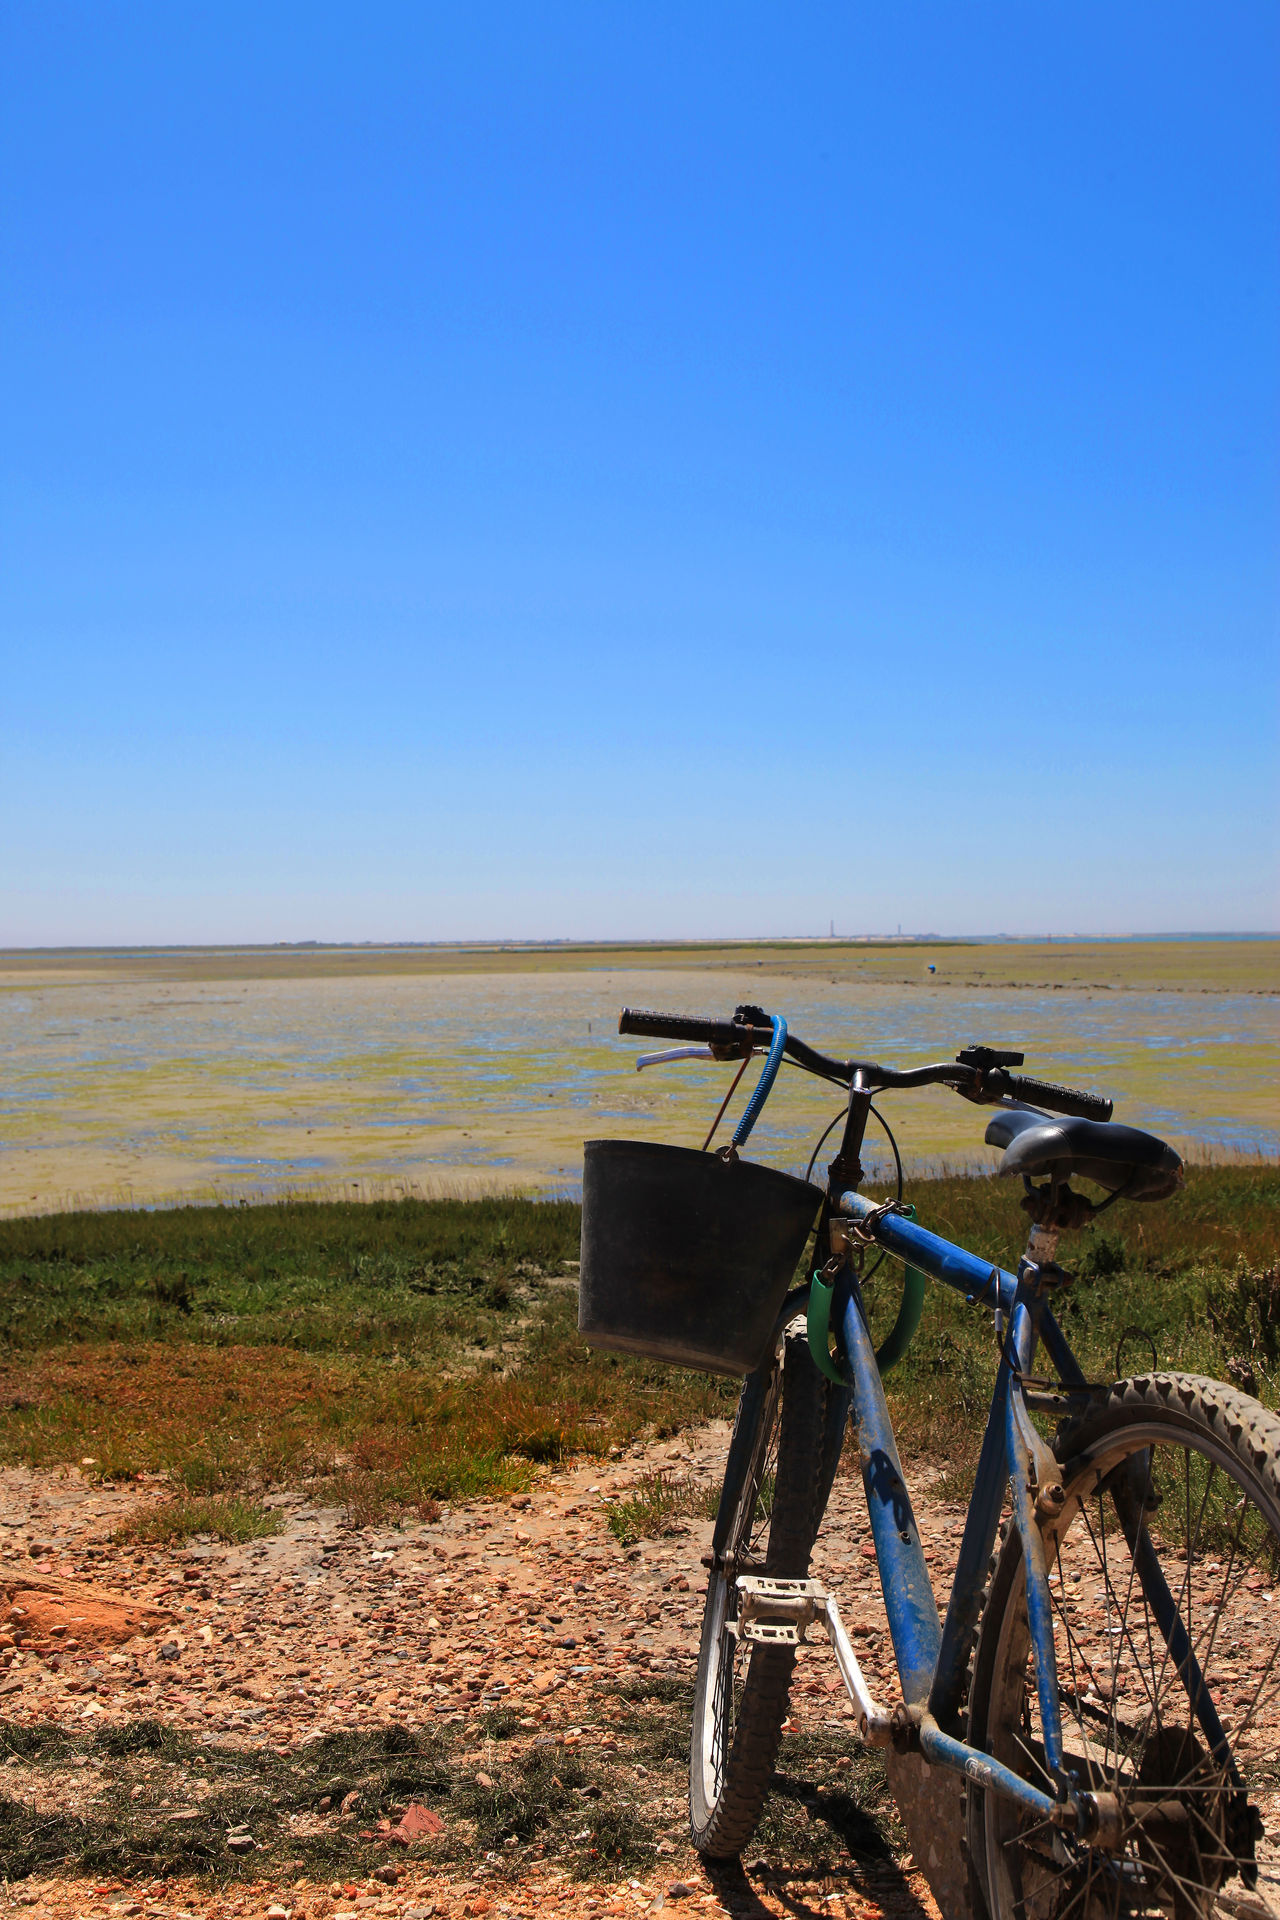 Fishing at work ... Blue Clear Sky Fisherman's Bike Landscape No People Ria Formosa Scenics Transportation